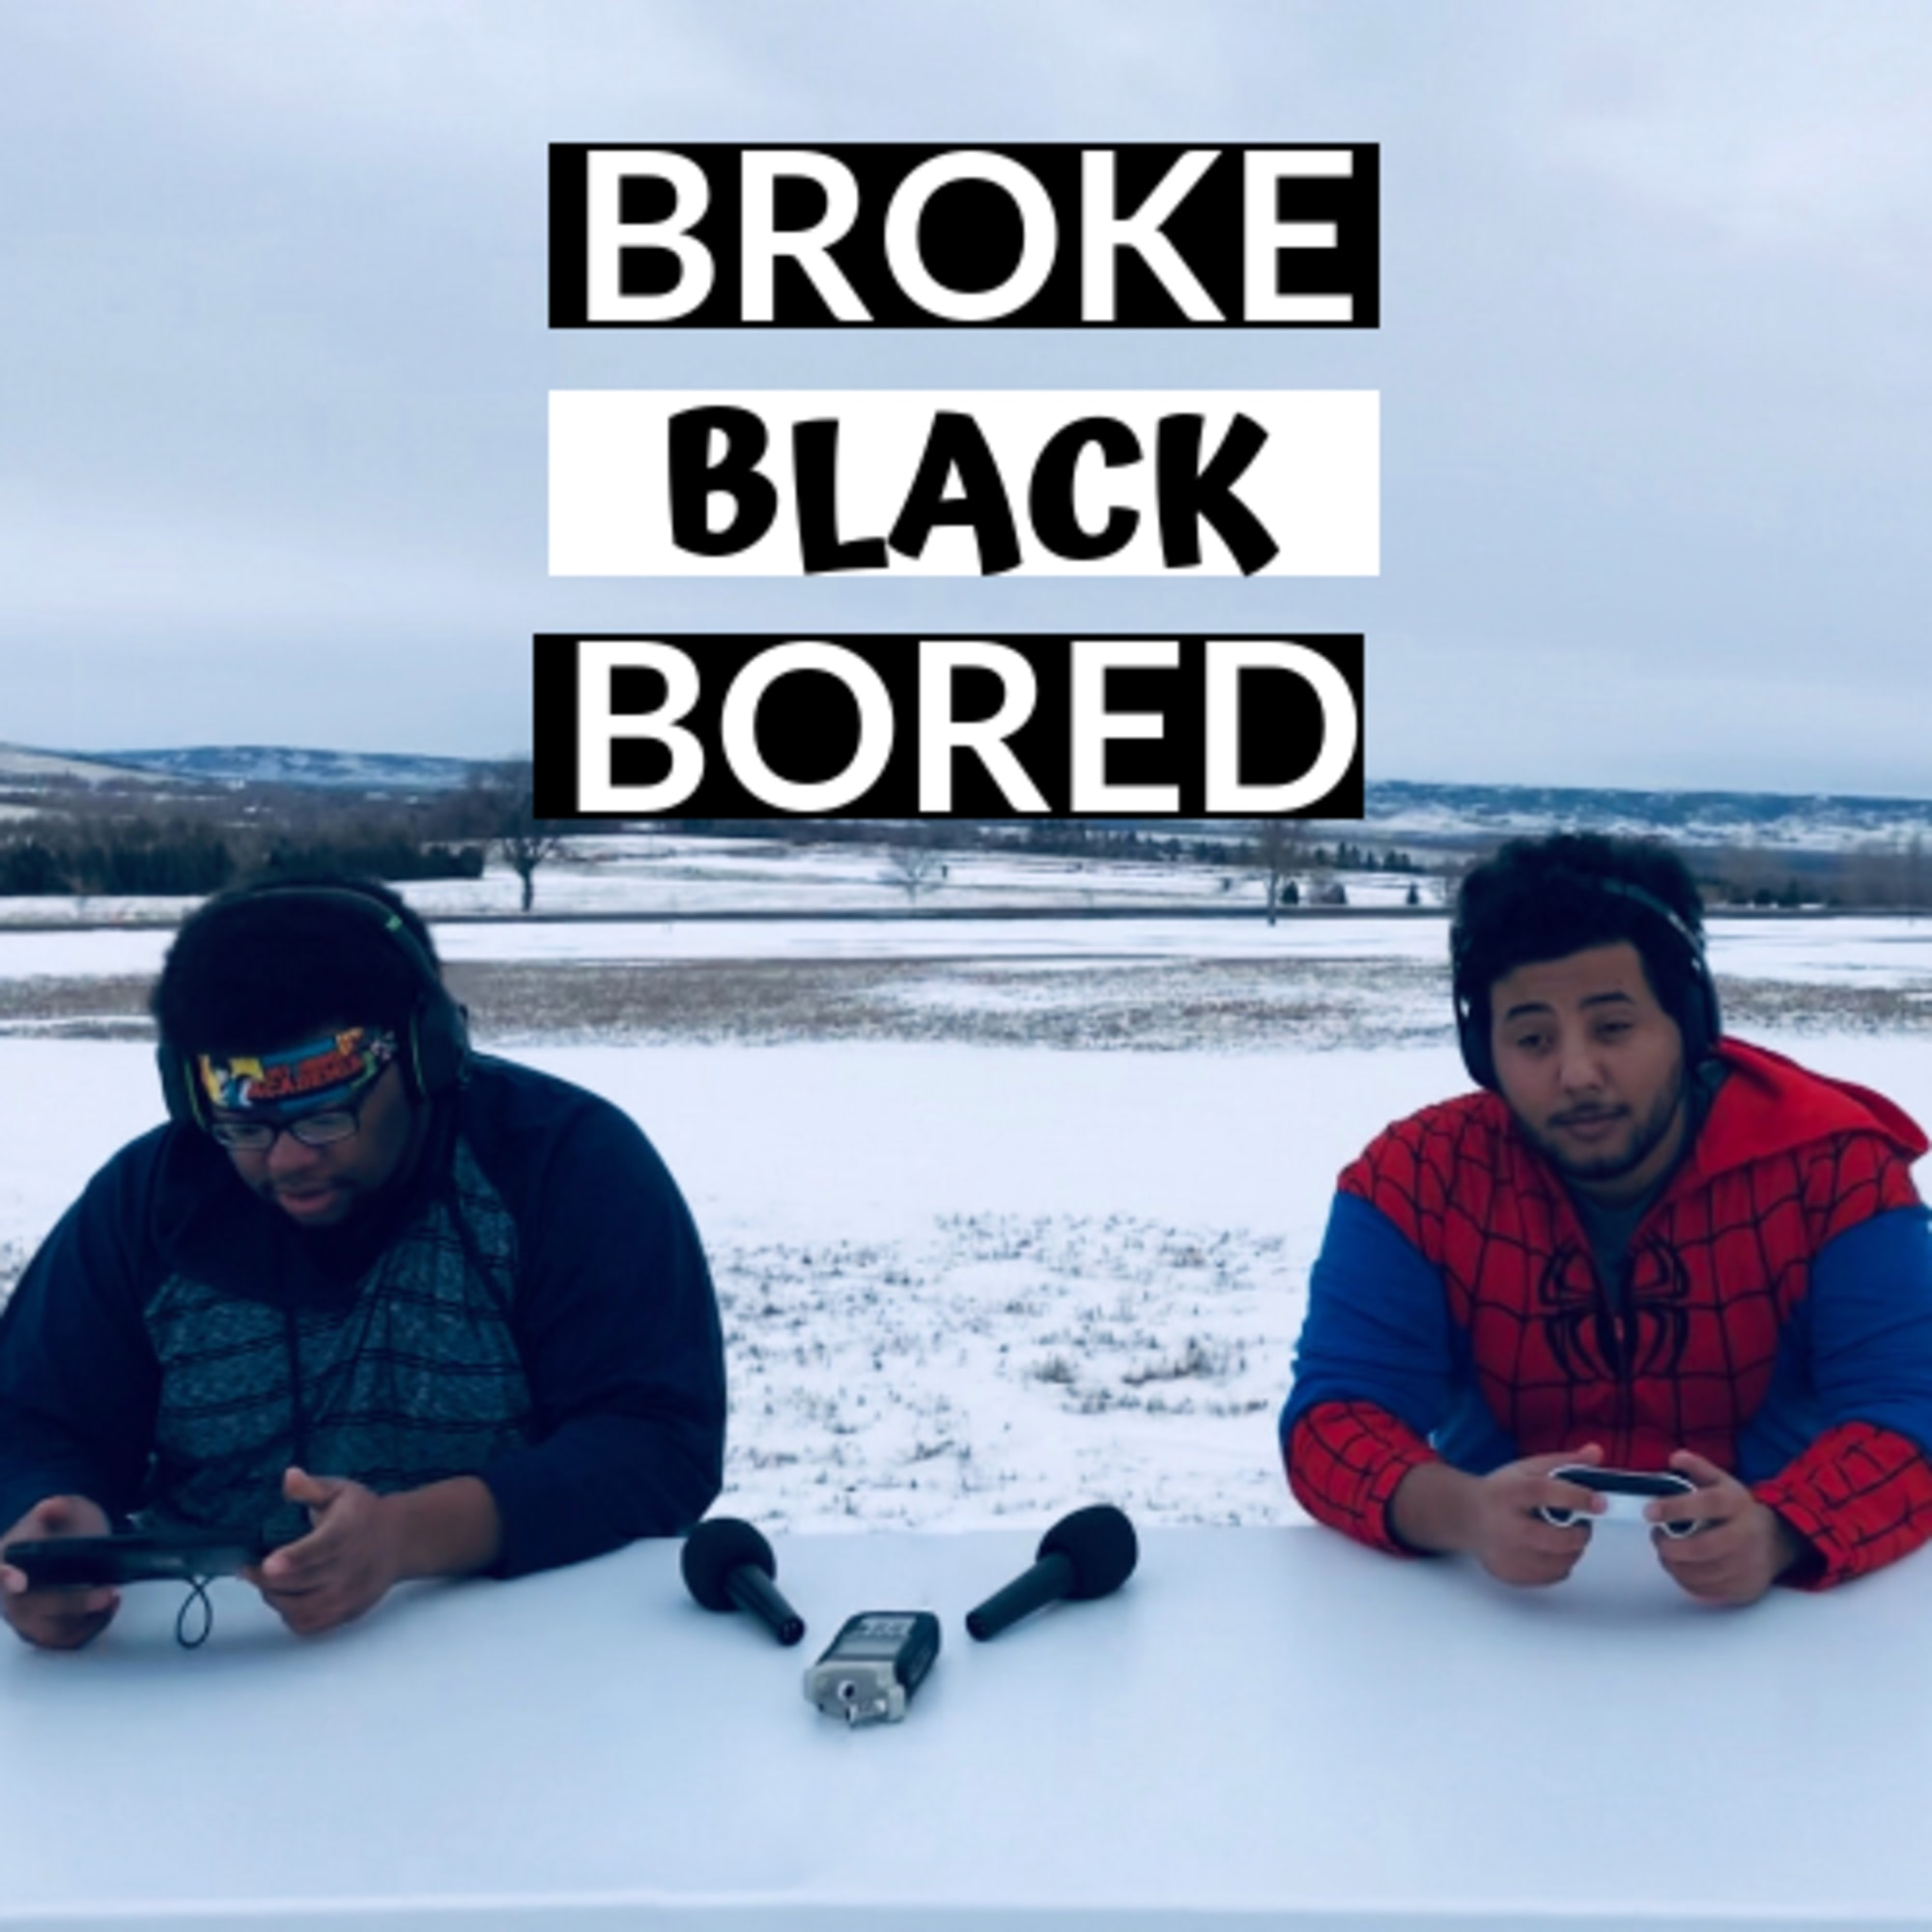 Broke Black & Bored